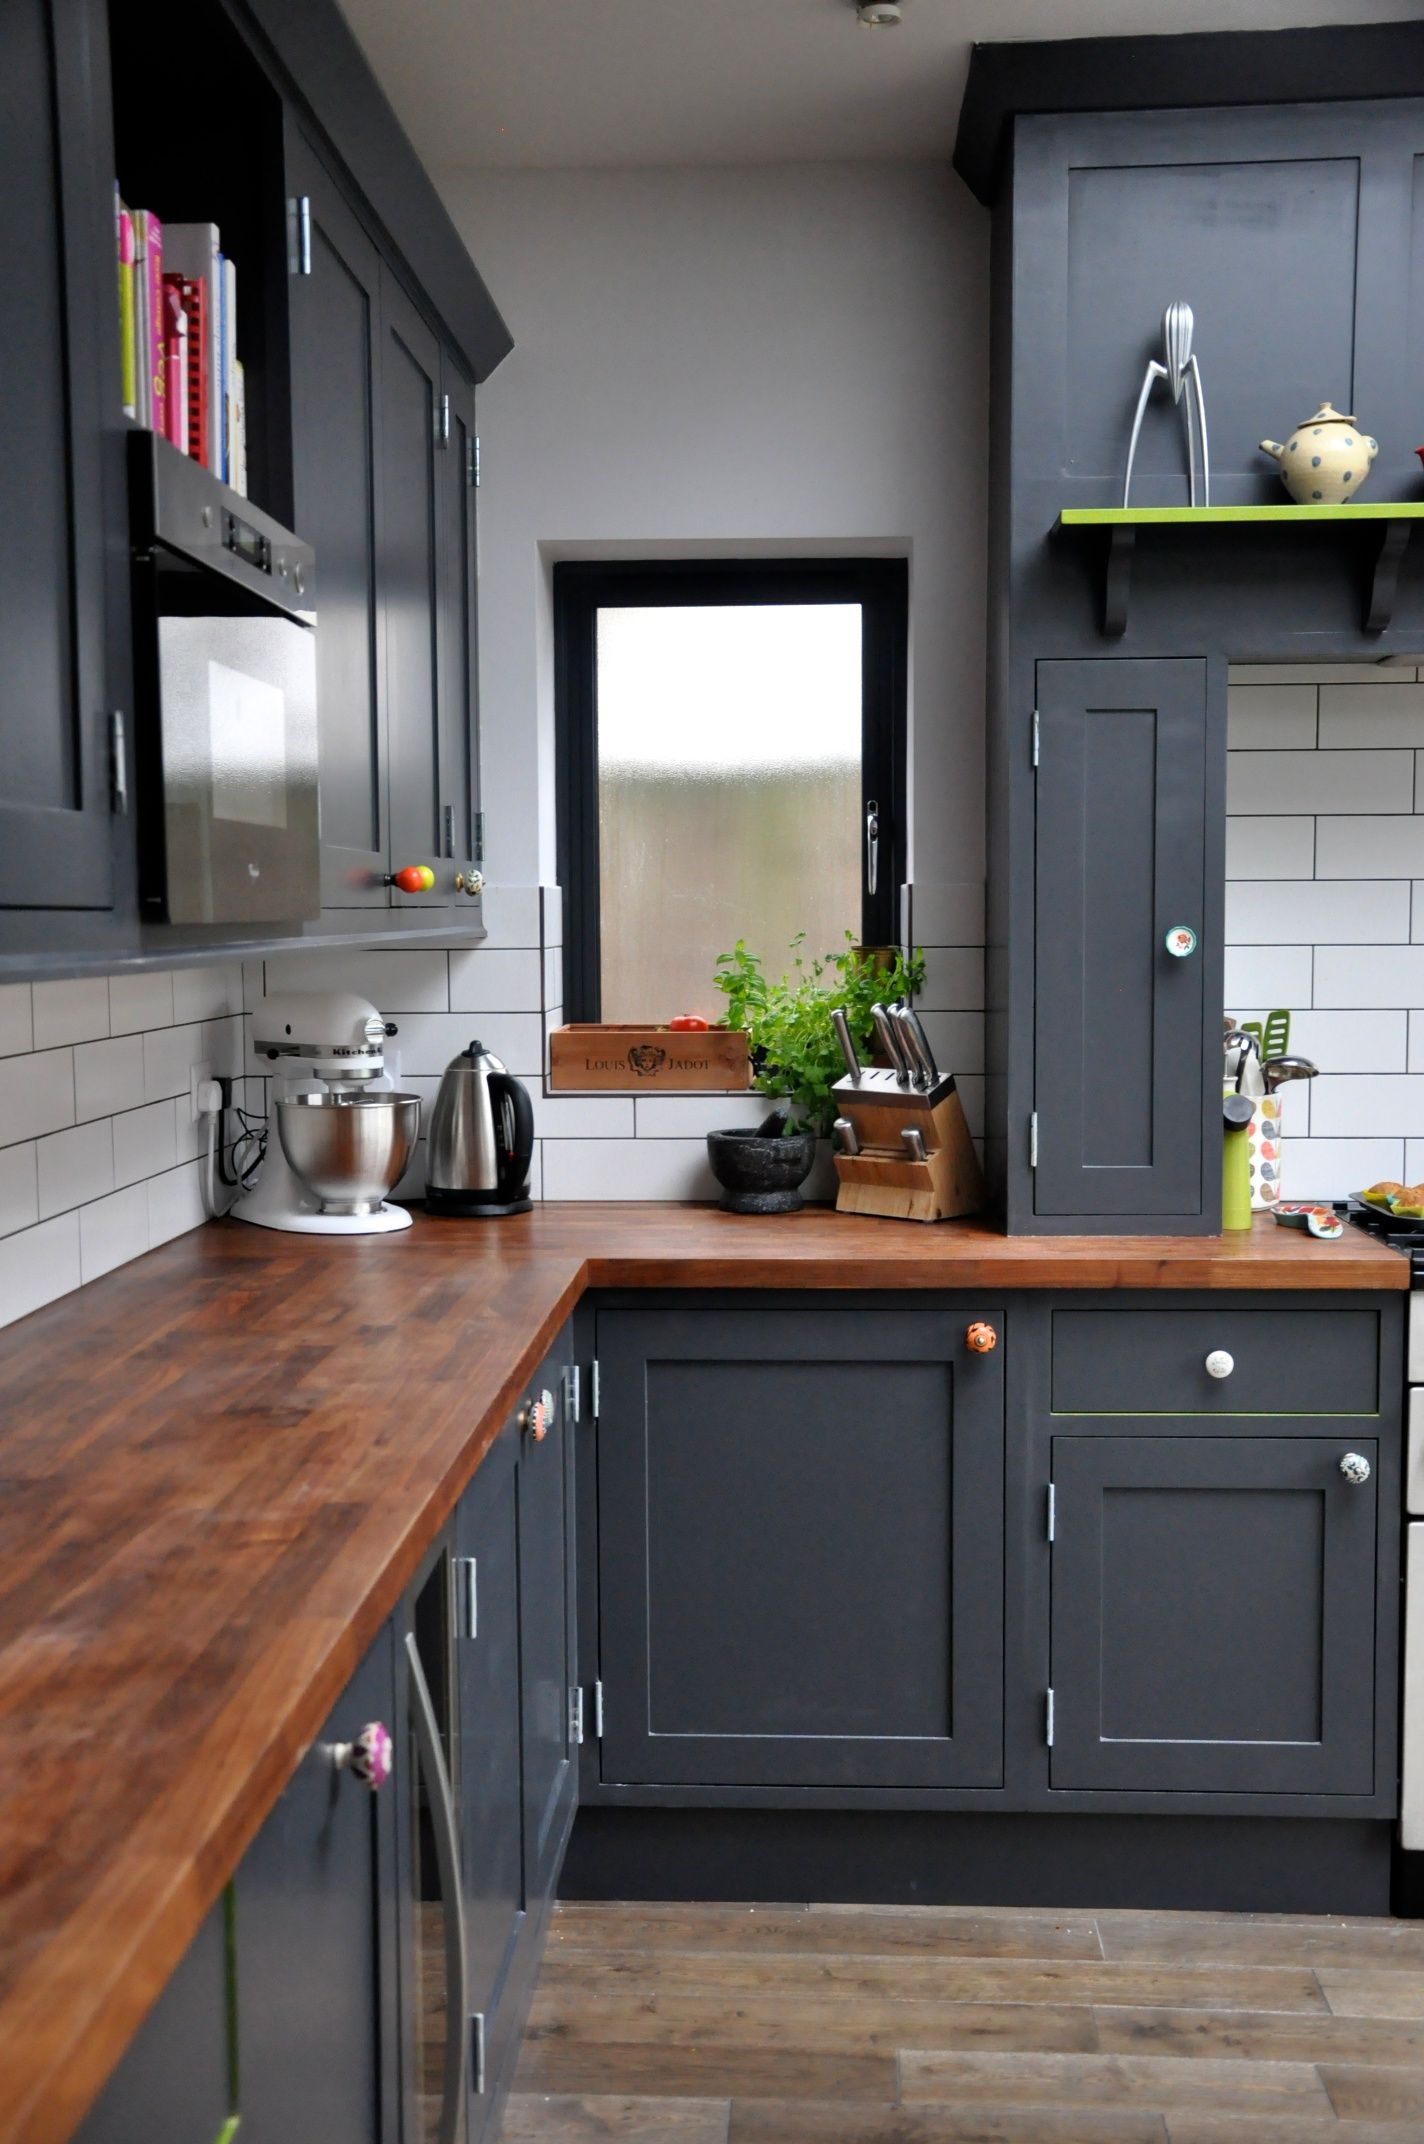 decorating black ways to use dark colors in your home kitchen cabinets